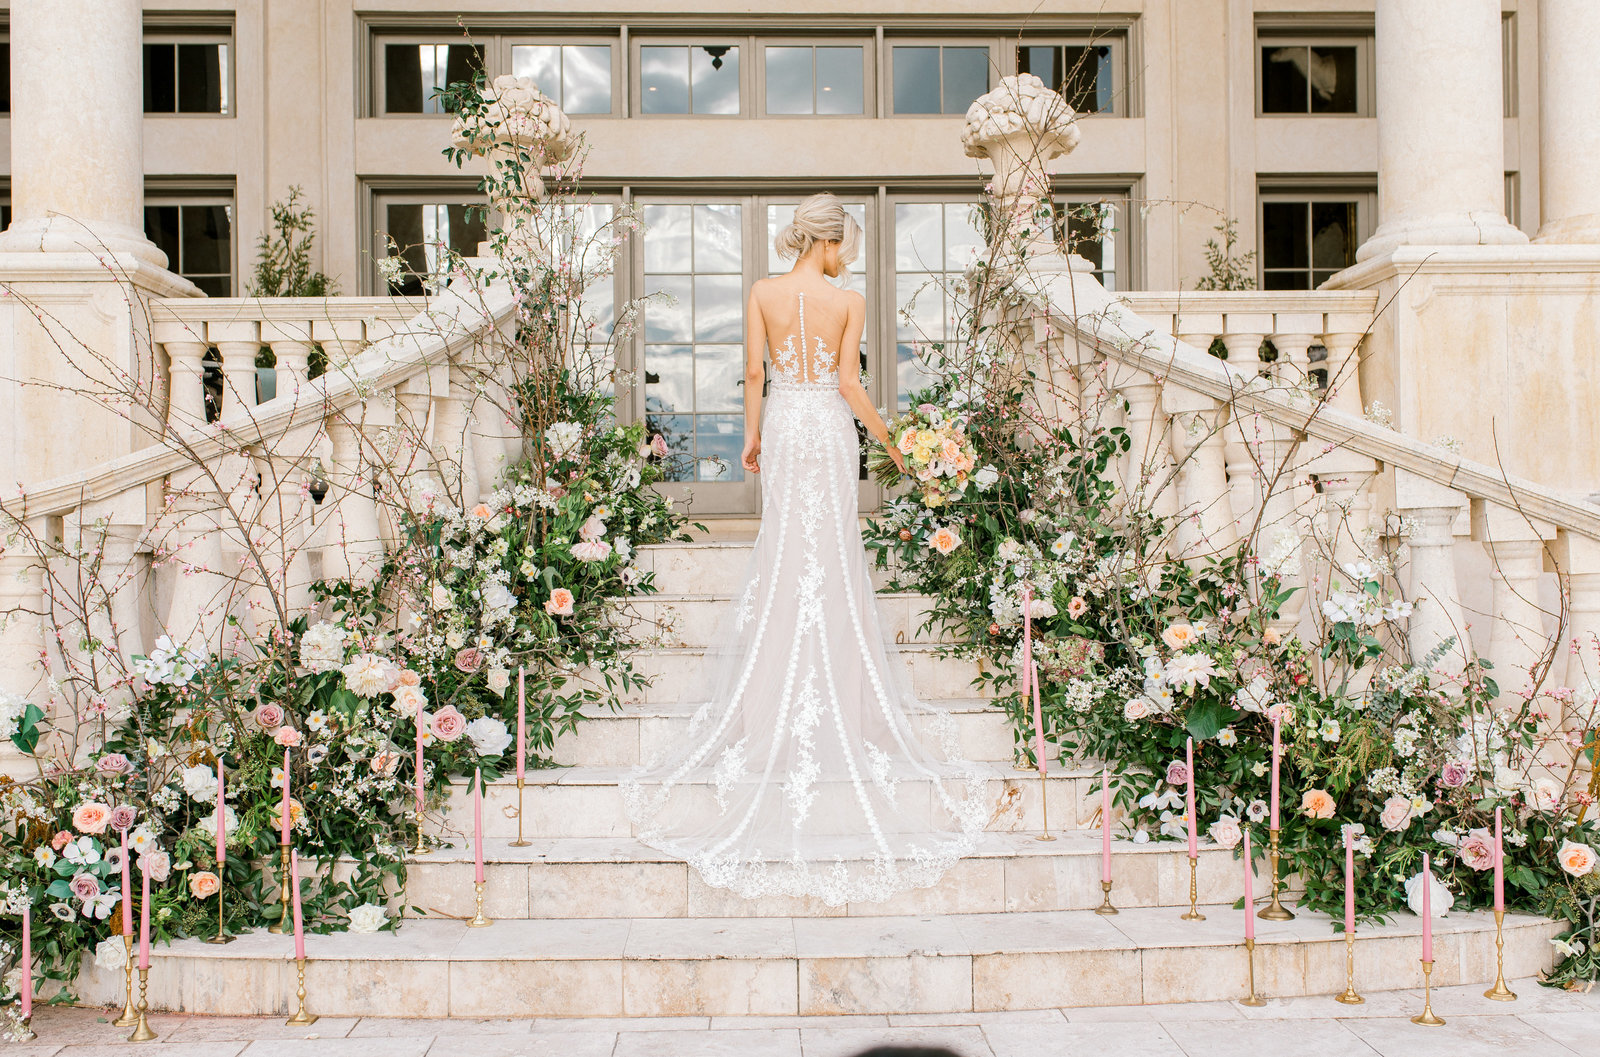 bride on stairs with a long train dress and flowers